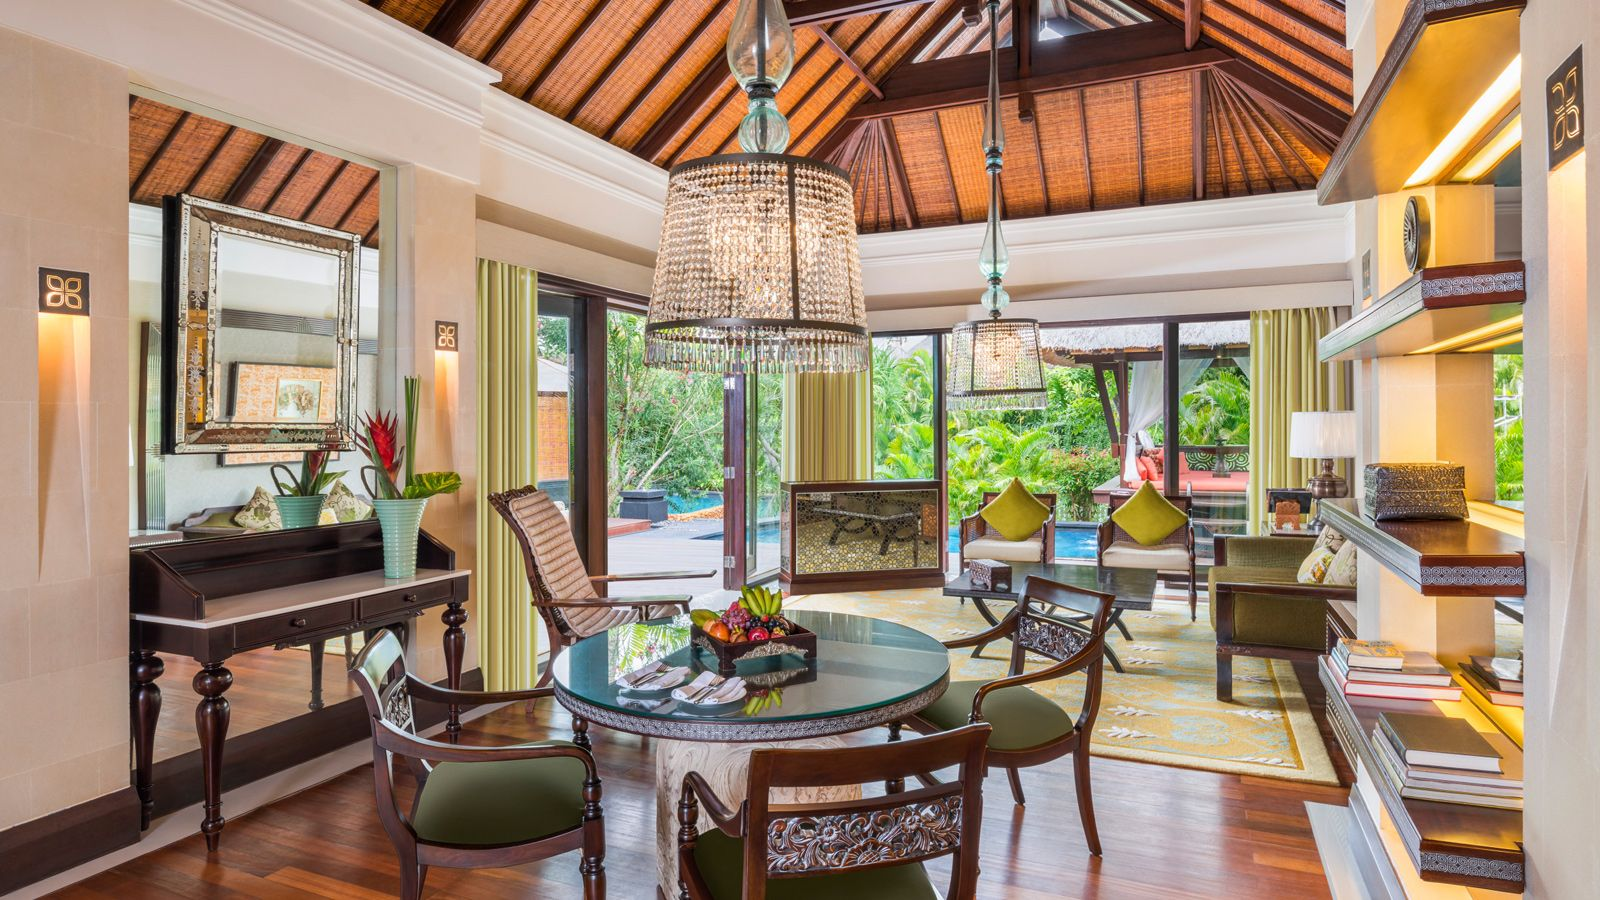 lagoon villa at St. Regis Bali - living room